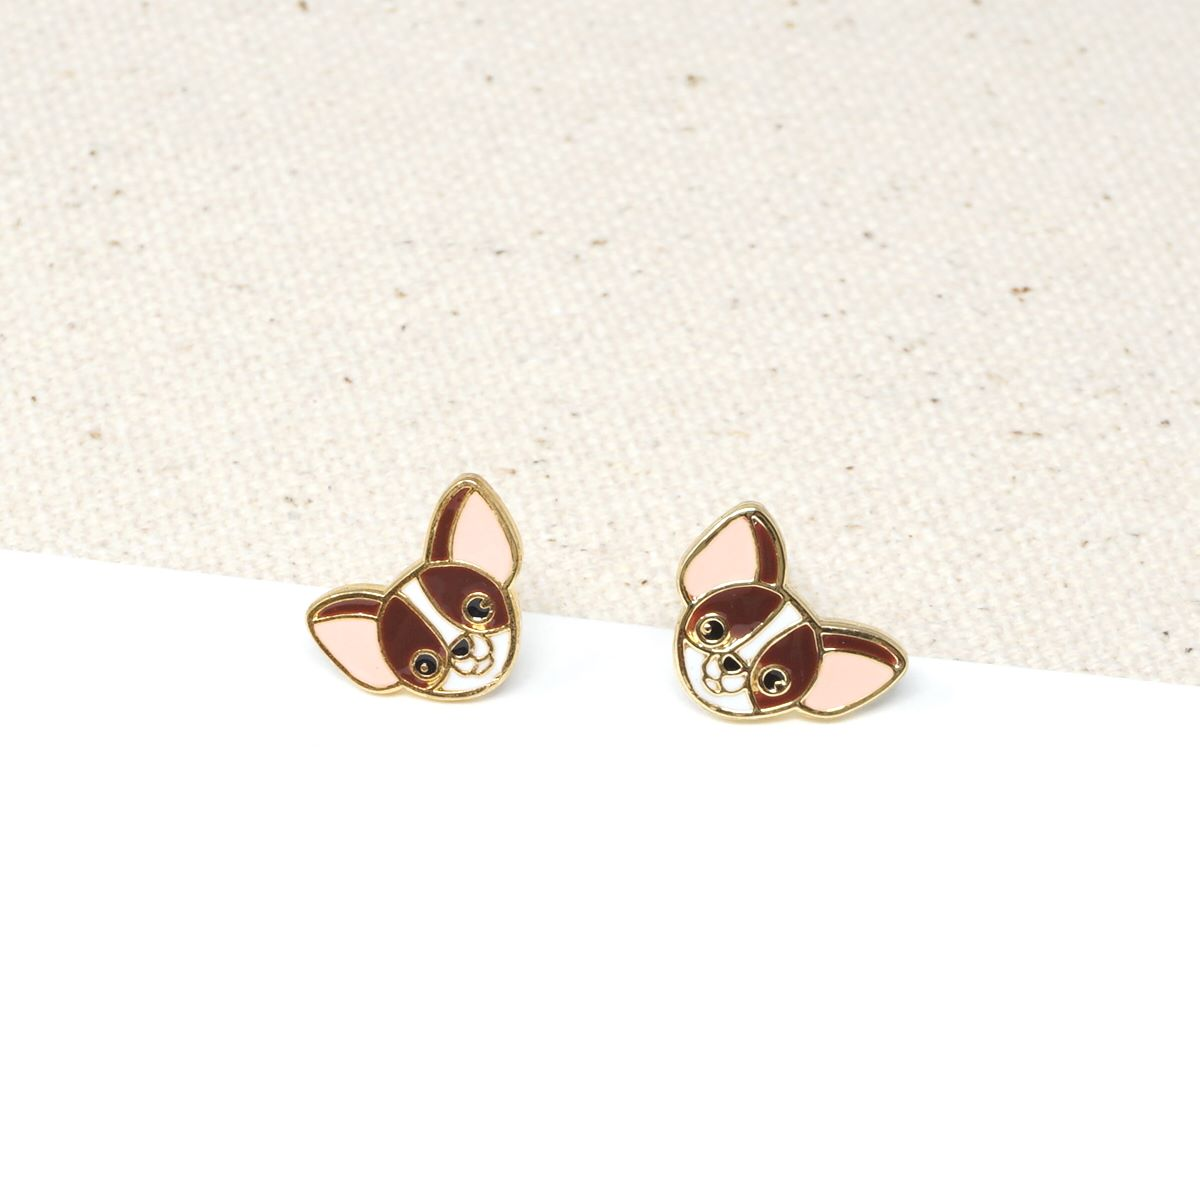 Handcrafted Brown Chihuahua Enamel Stud Earrings